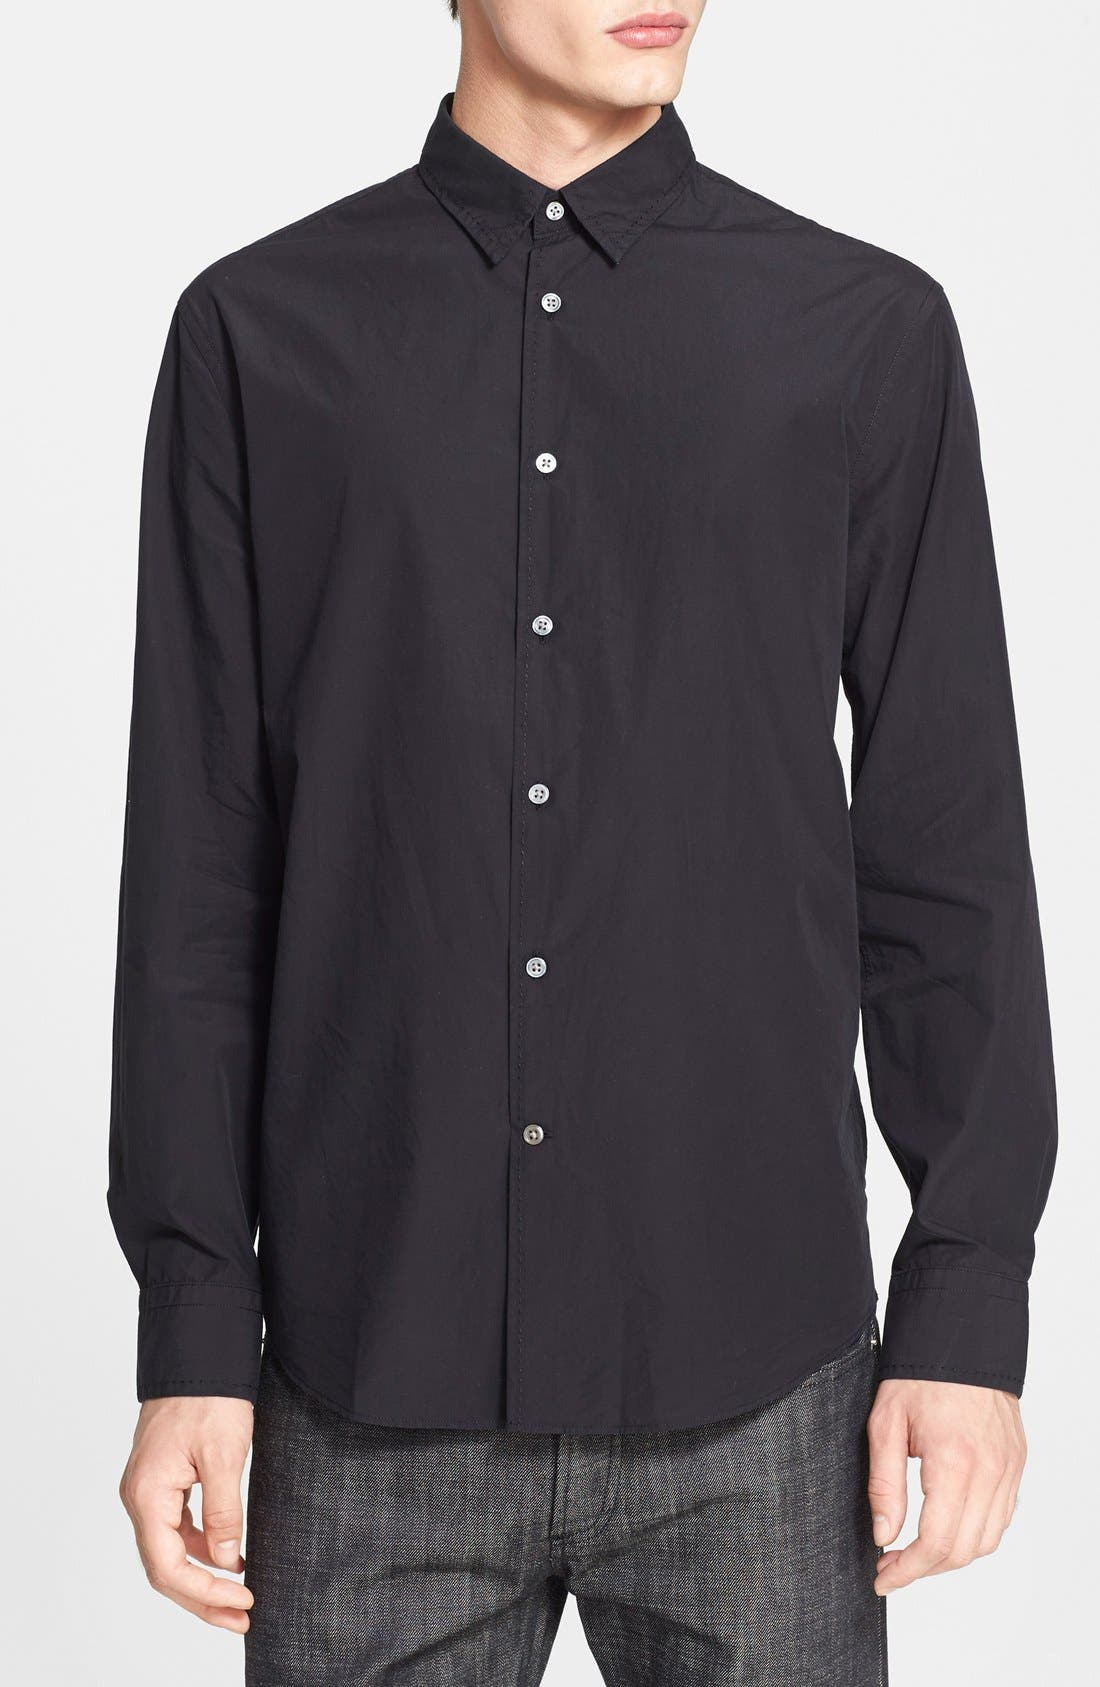 Alternate Image 1 Selected - John Varvatos Collection Extra Trim Fit Sport Shirt